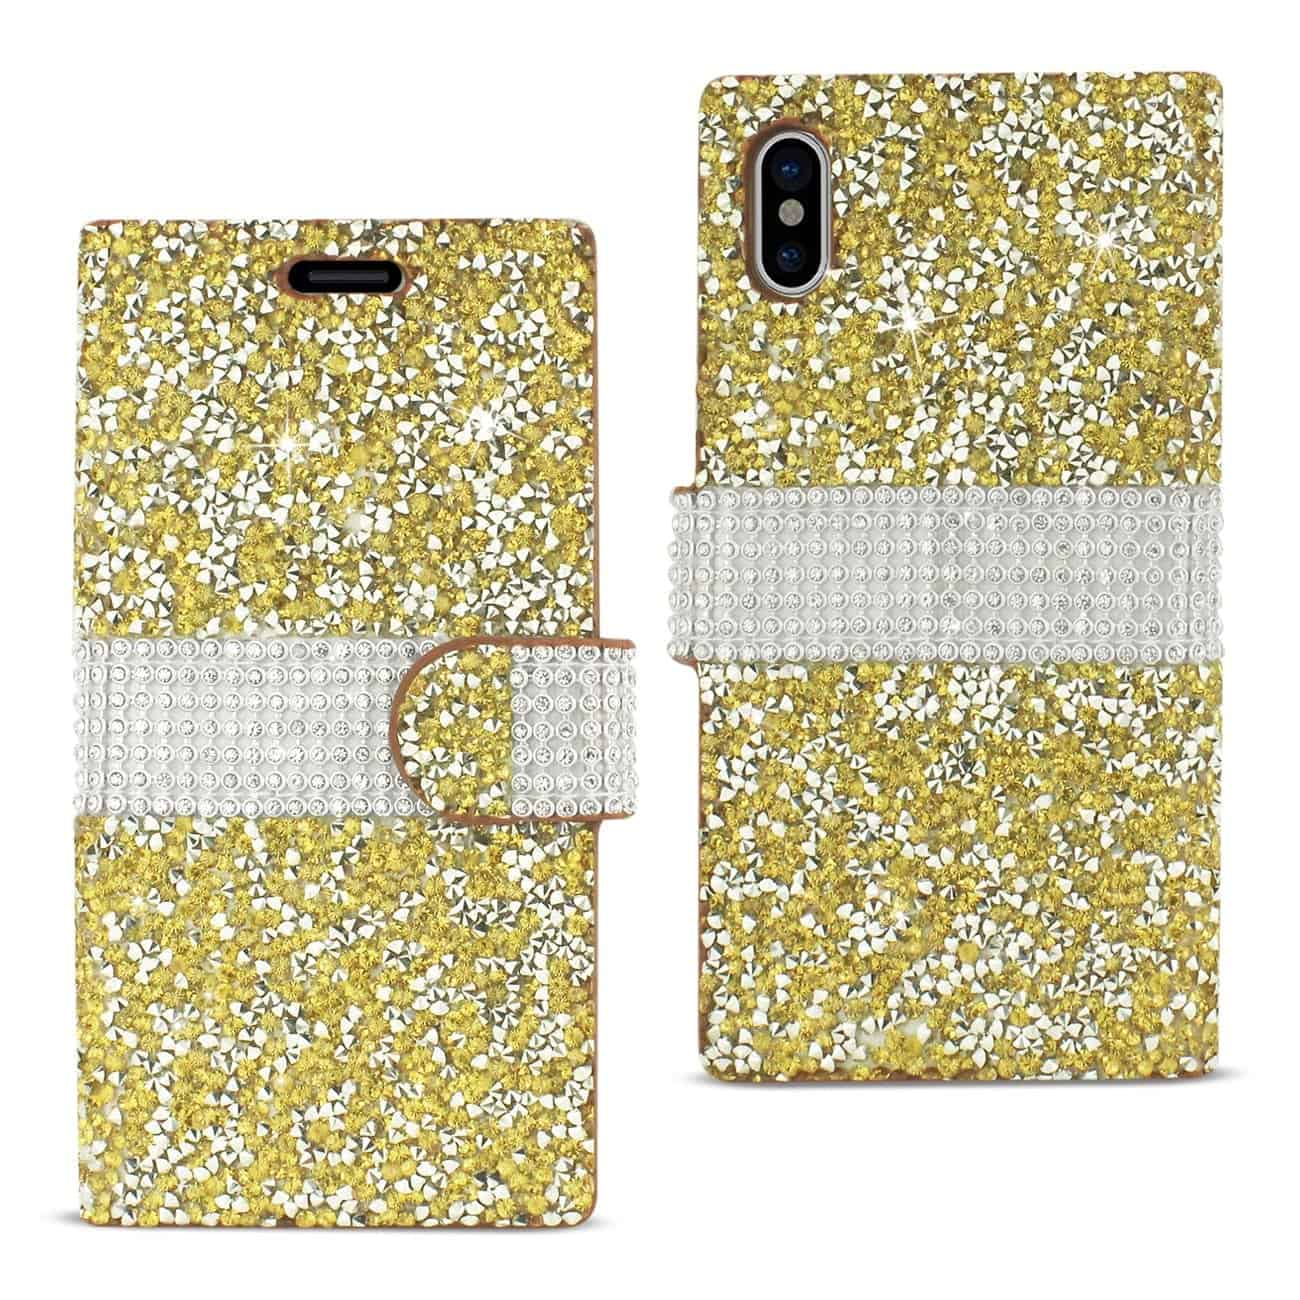 IPHONE X DIAMOND RHINESTONE WALLET CASE IN GOLD